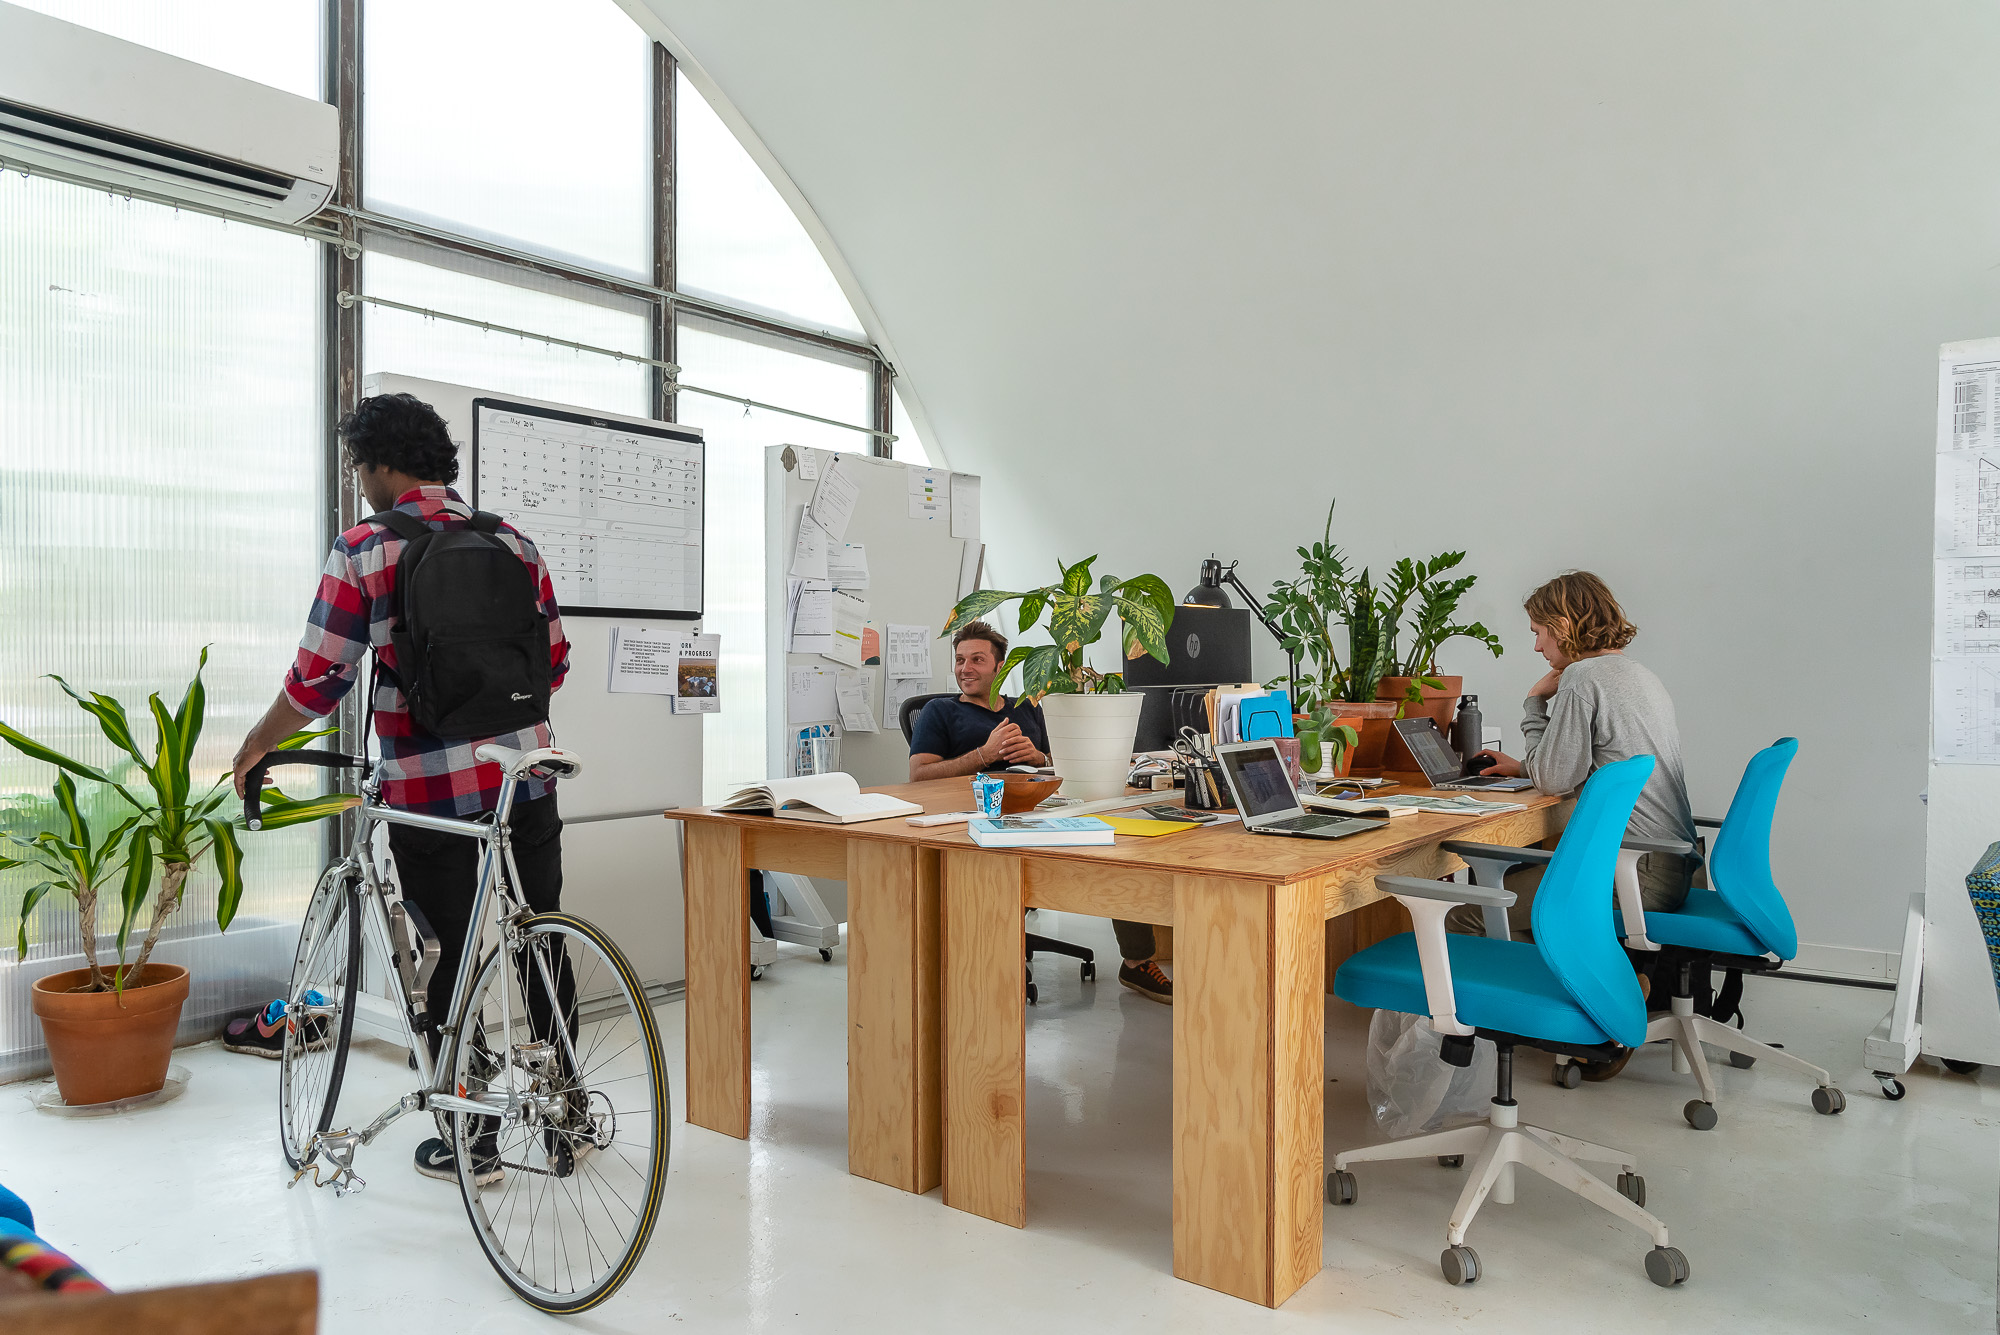 prince_concepts_office_hut_spring-7.jpg